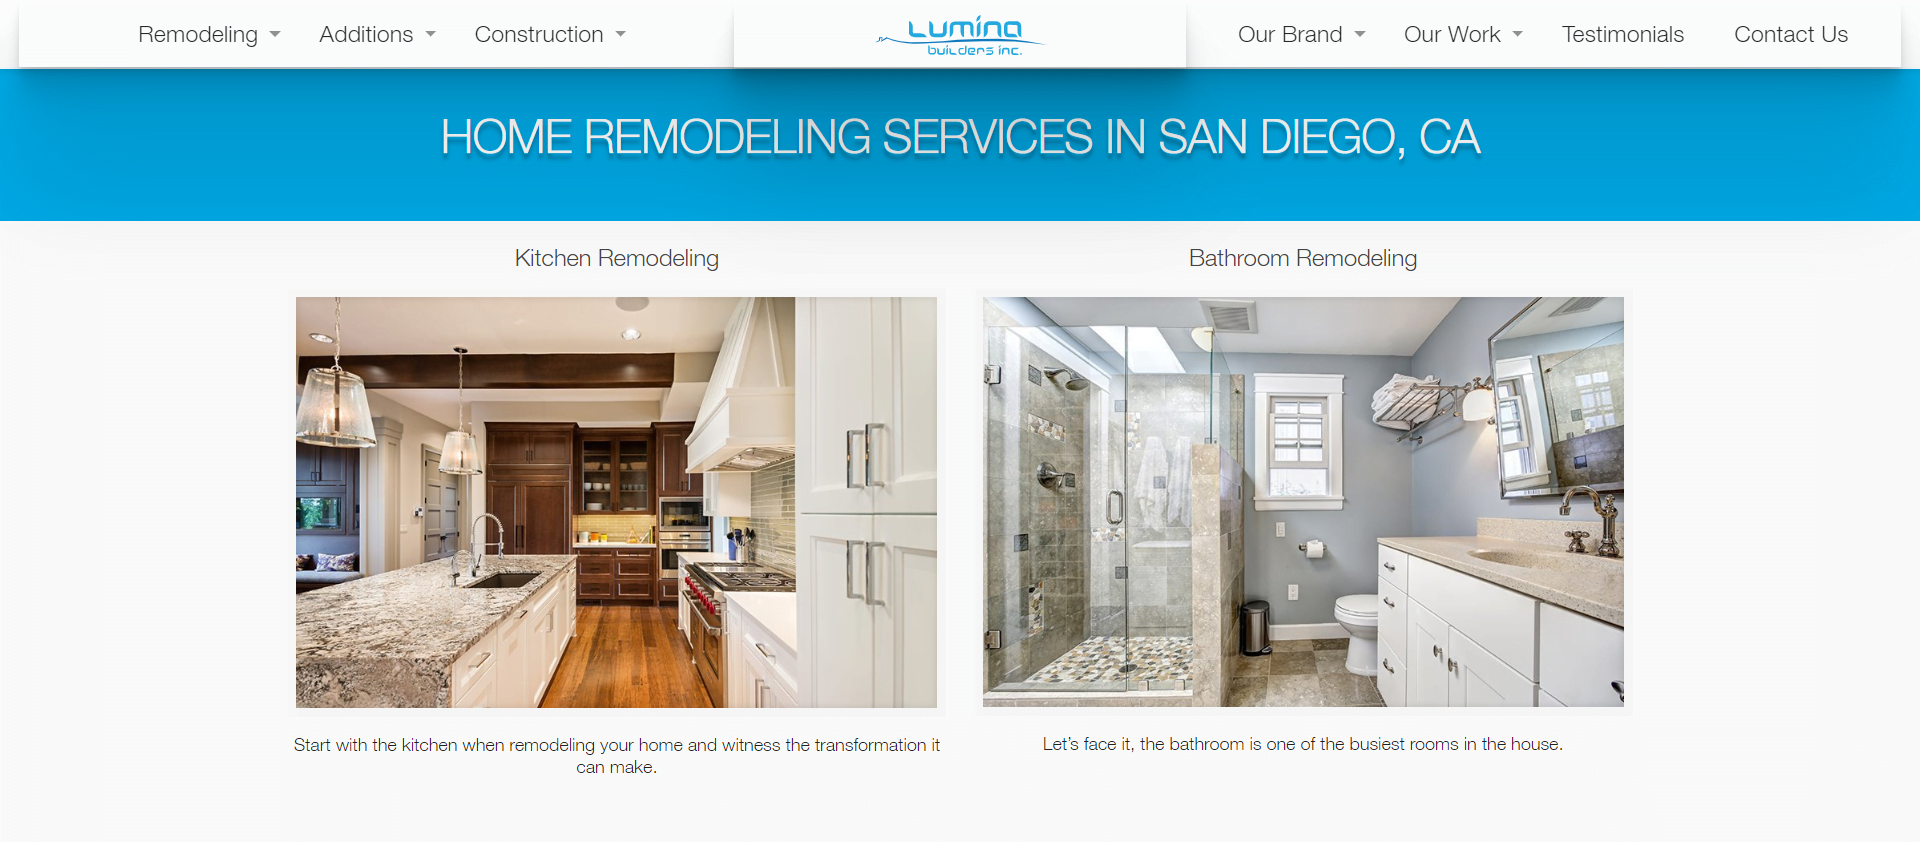 Lumina Builders 1 Home Renovations and Remodels San Diego luminabuildersinc.com